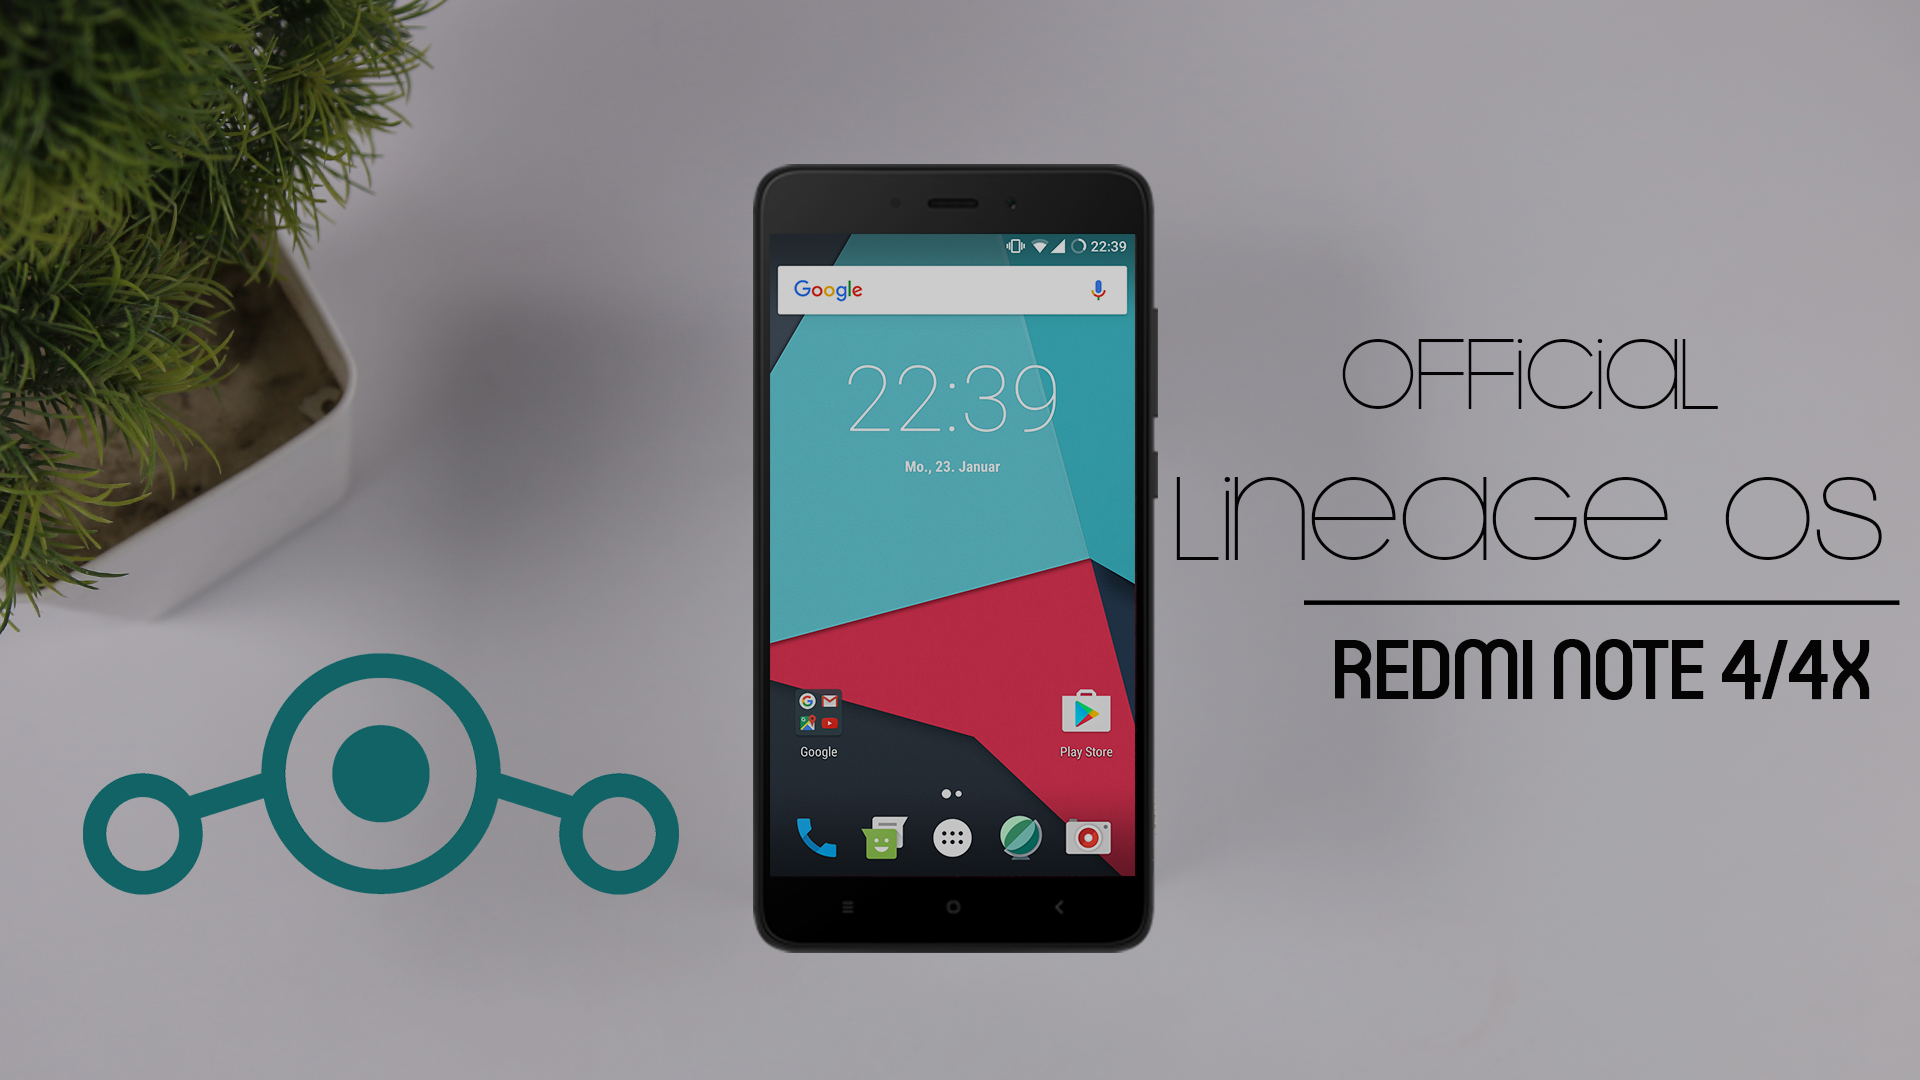 Official Lineage OS 14.1 For Redmi Note 4